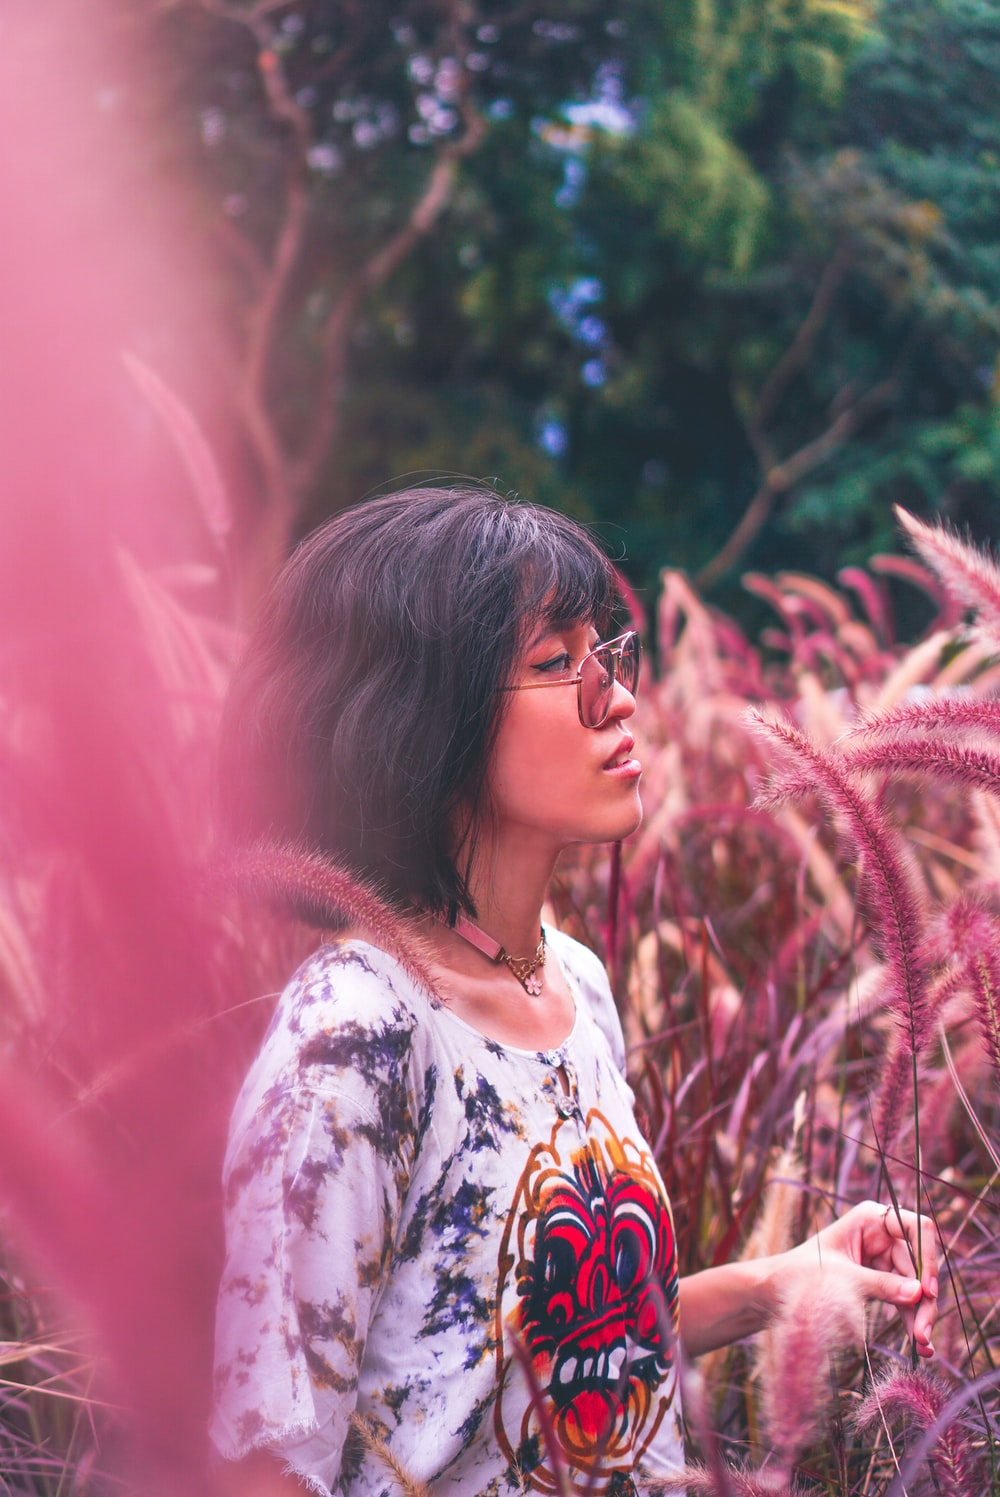 woman in white and yellow floral shirt standing near green plants during daytime